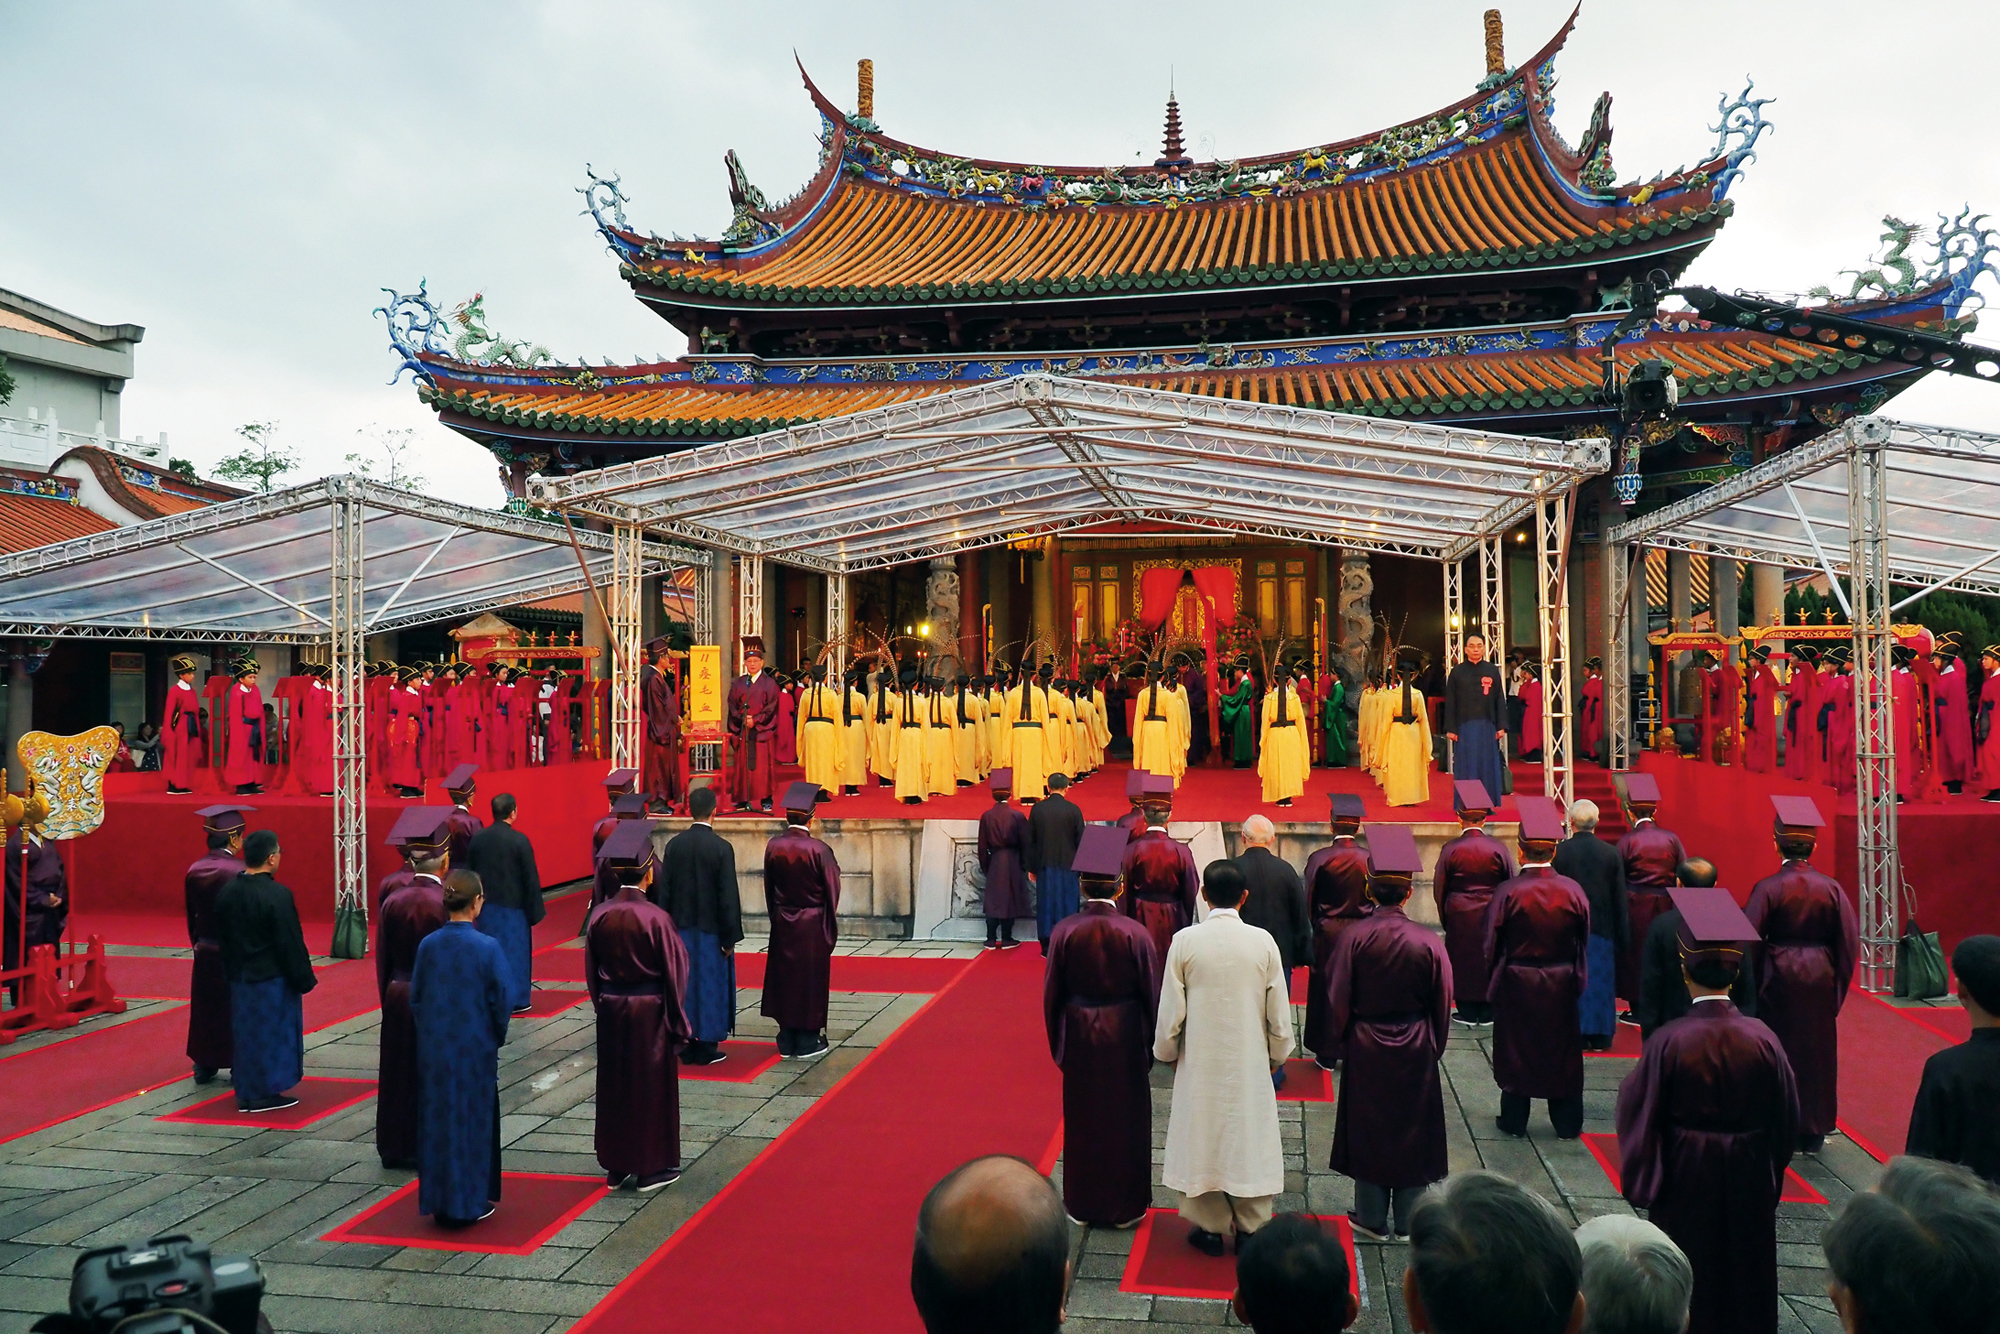 The Autumn Confucian Ceremony is a major event in the temple's annual calendar.